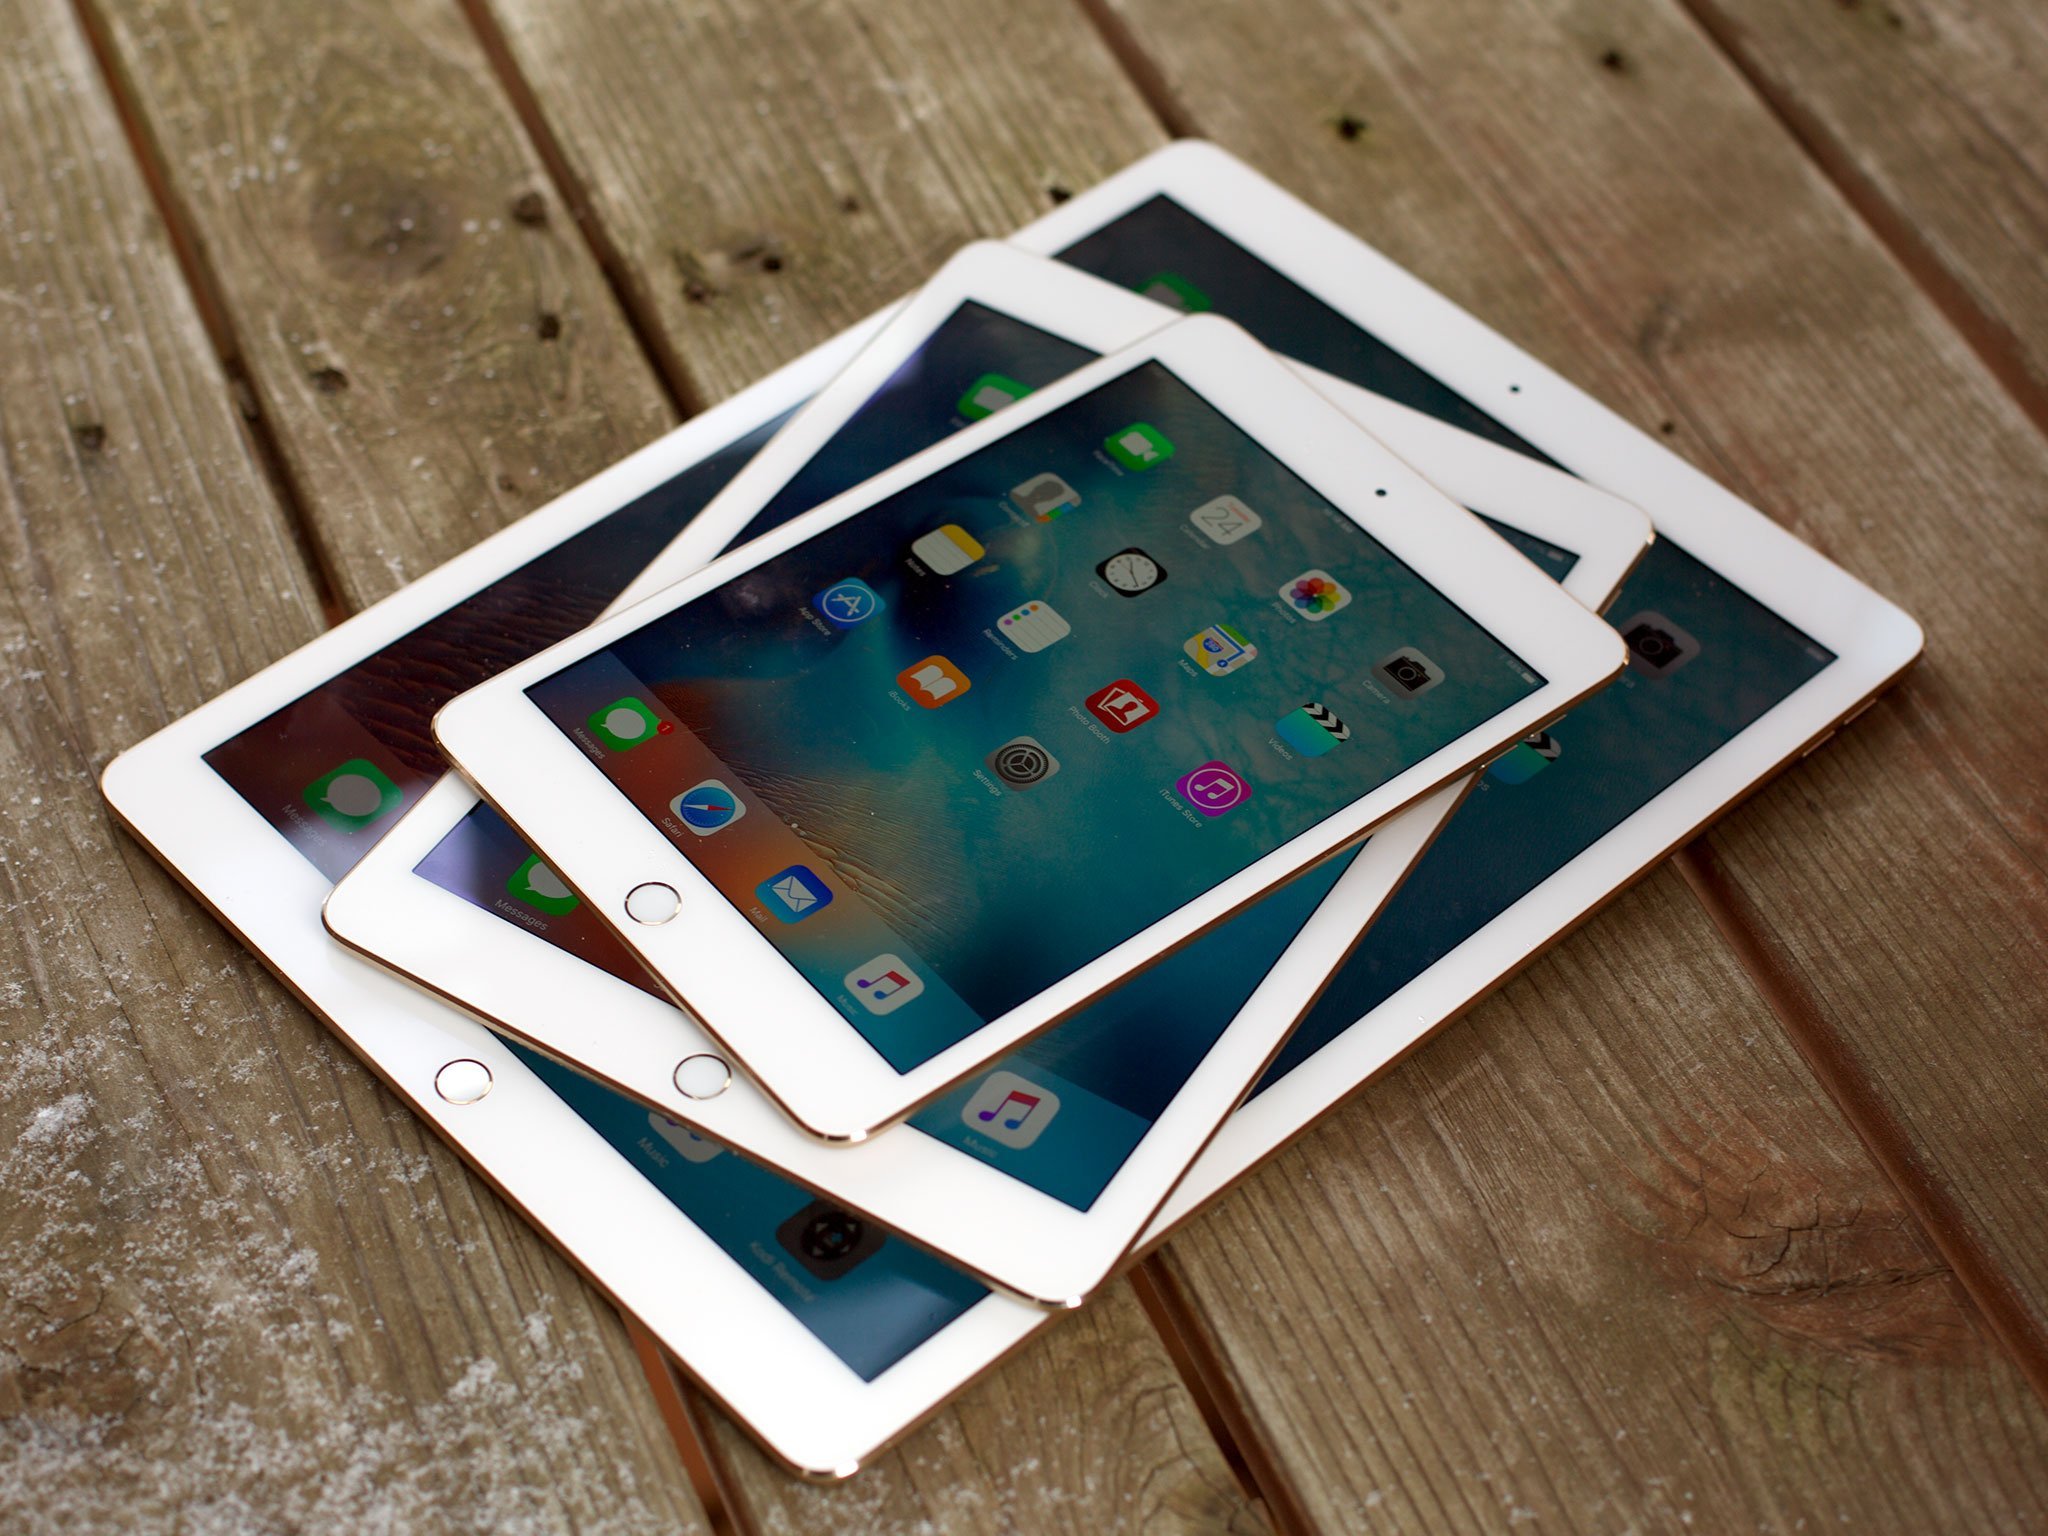 129 Inch Ipad Pro Review 2017 Bigger Meets Better Imore